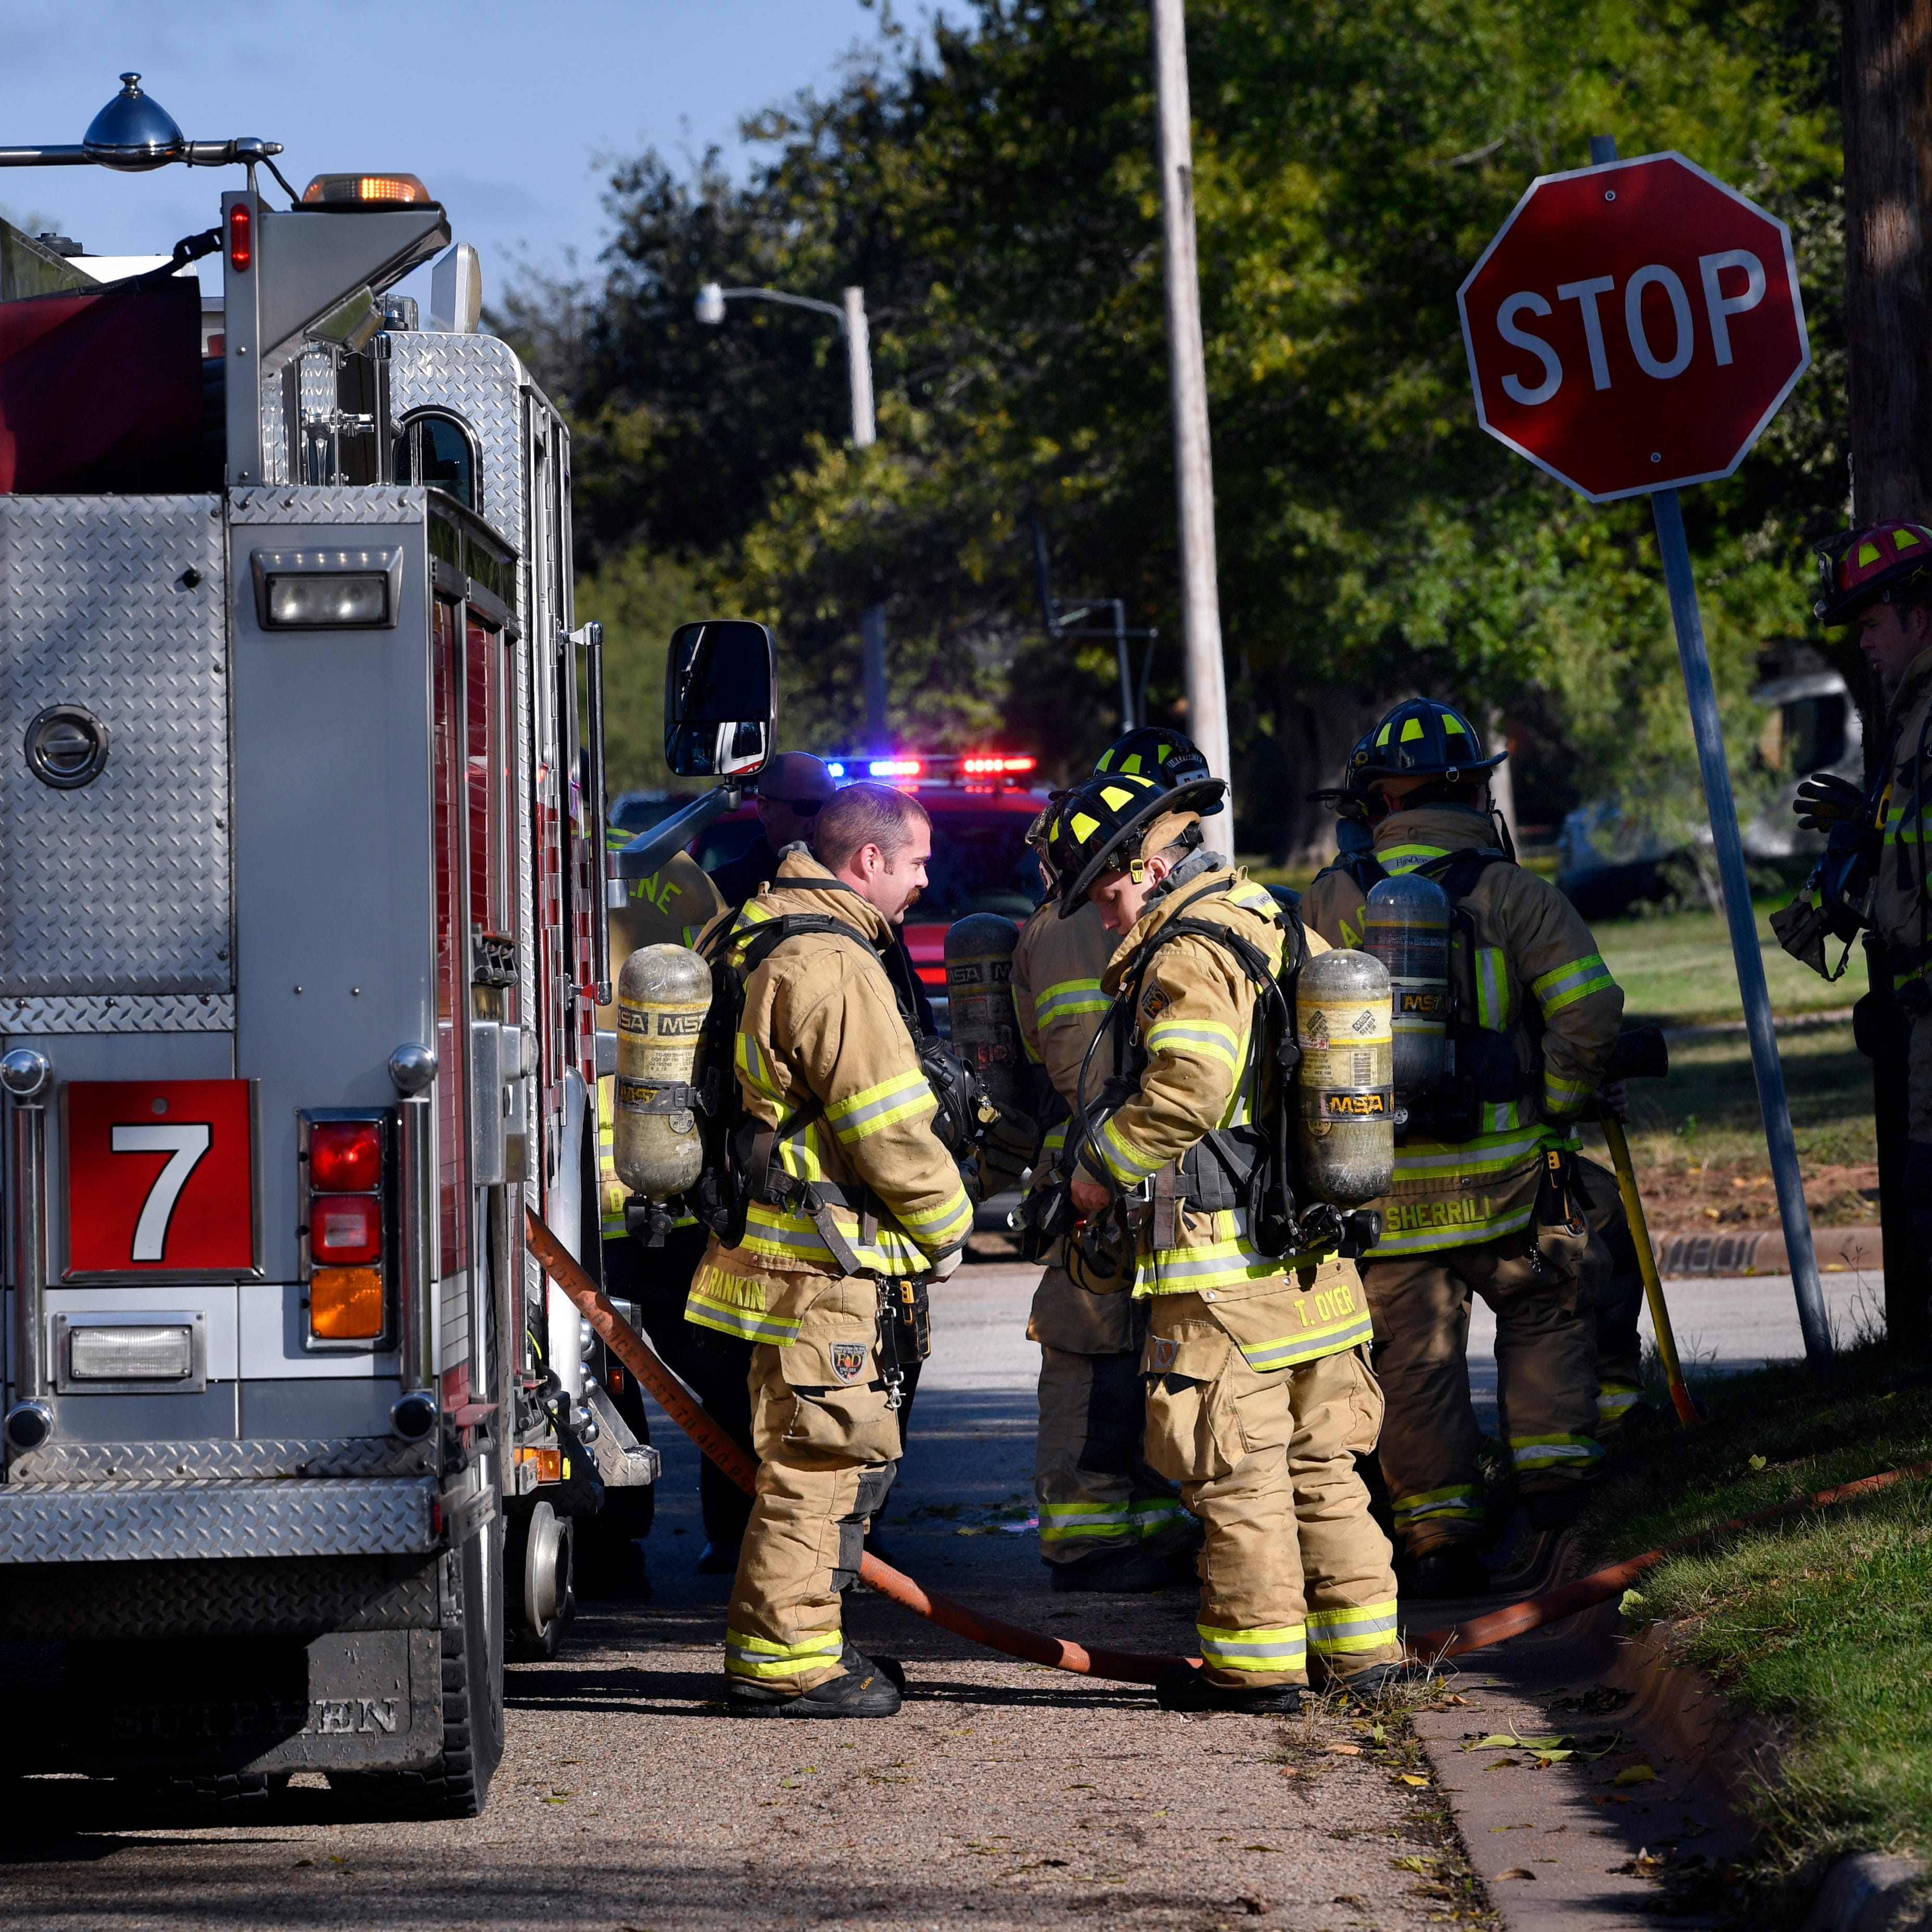 Abilene firefighters stand beside a fire truck after responding to a fire in the 1700 block of Glenhaven Drive Tuesday Nov. 13, 2018. Four occupants of the home were transported to a local hospital.